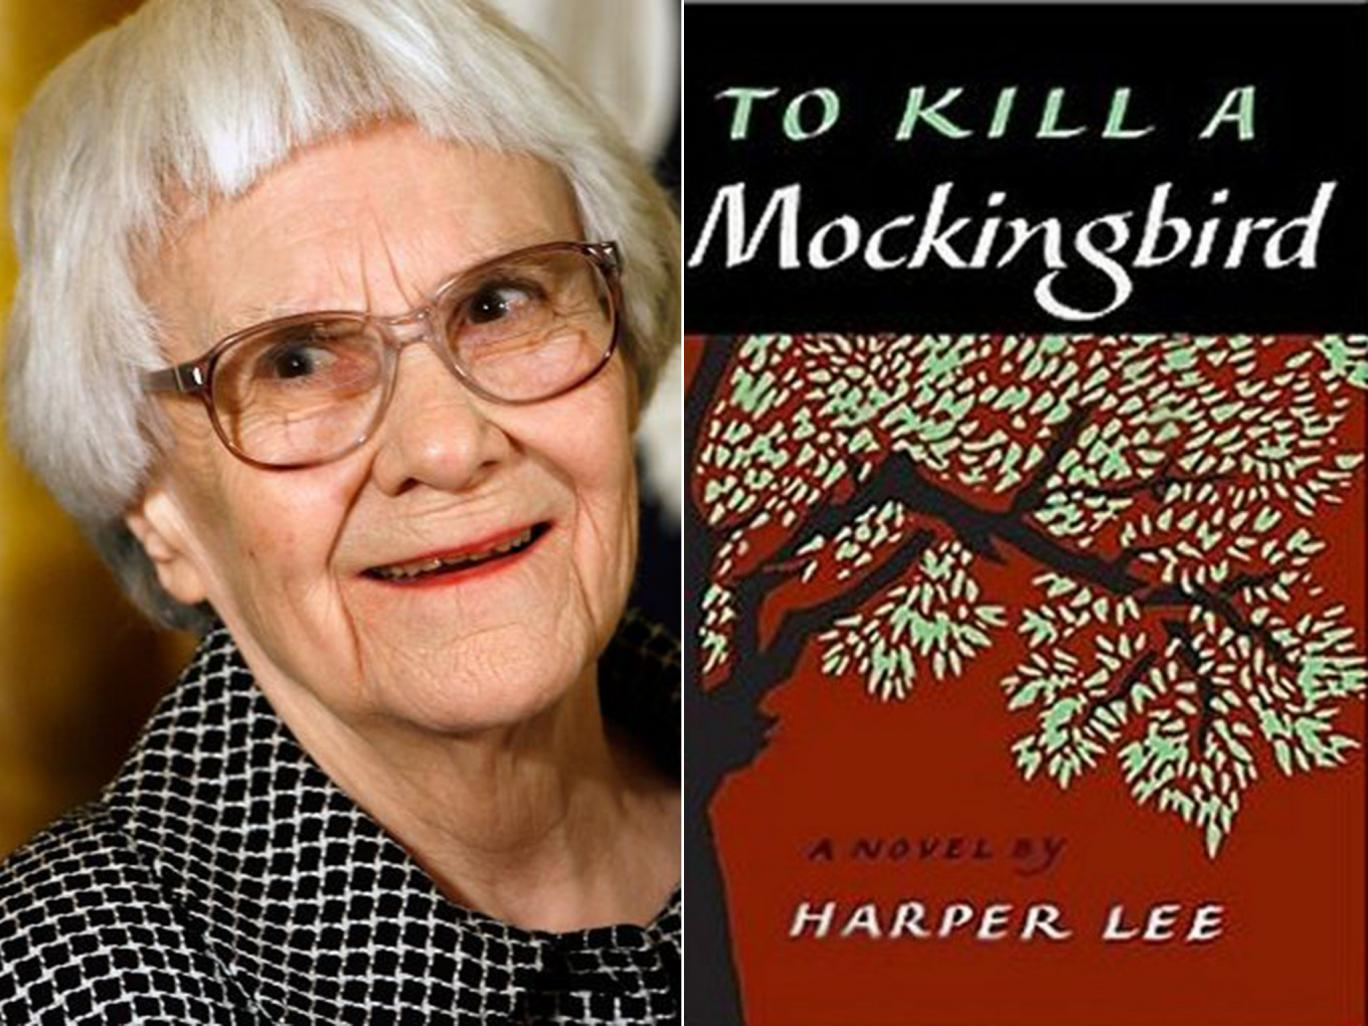 the authors characters and the novel to kill a mockingbird by harper lee In a tribute to the late harper lee, we hear several poignant passages read from her novel, to kill a mockingbird.